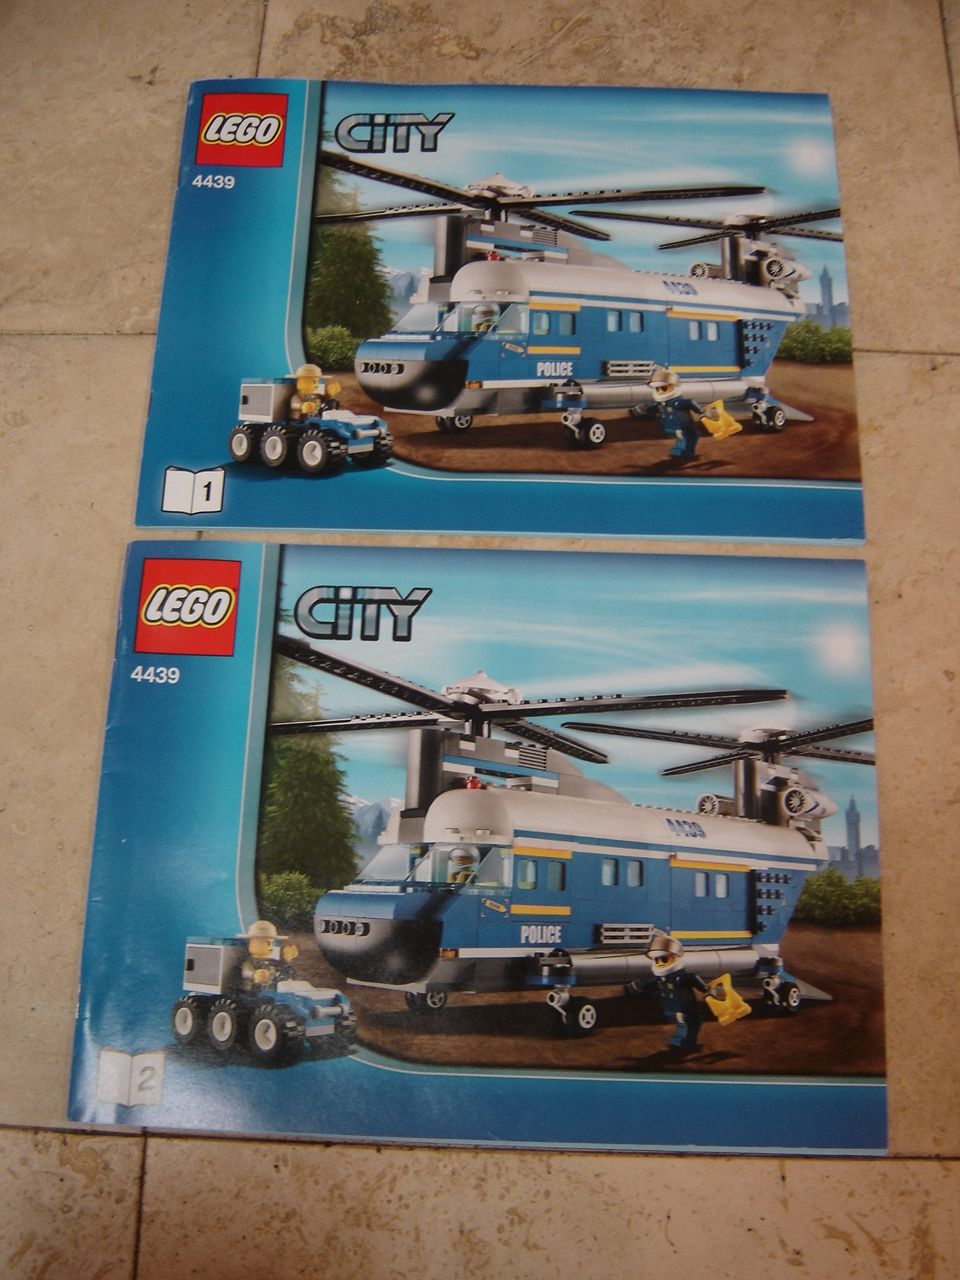 Lego City 4439 Police Heavy Lift Helicopter Instruction Manuals 1